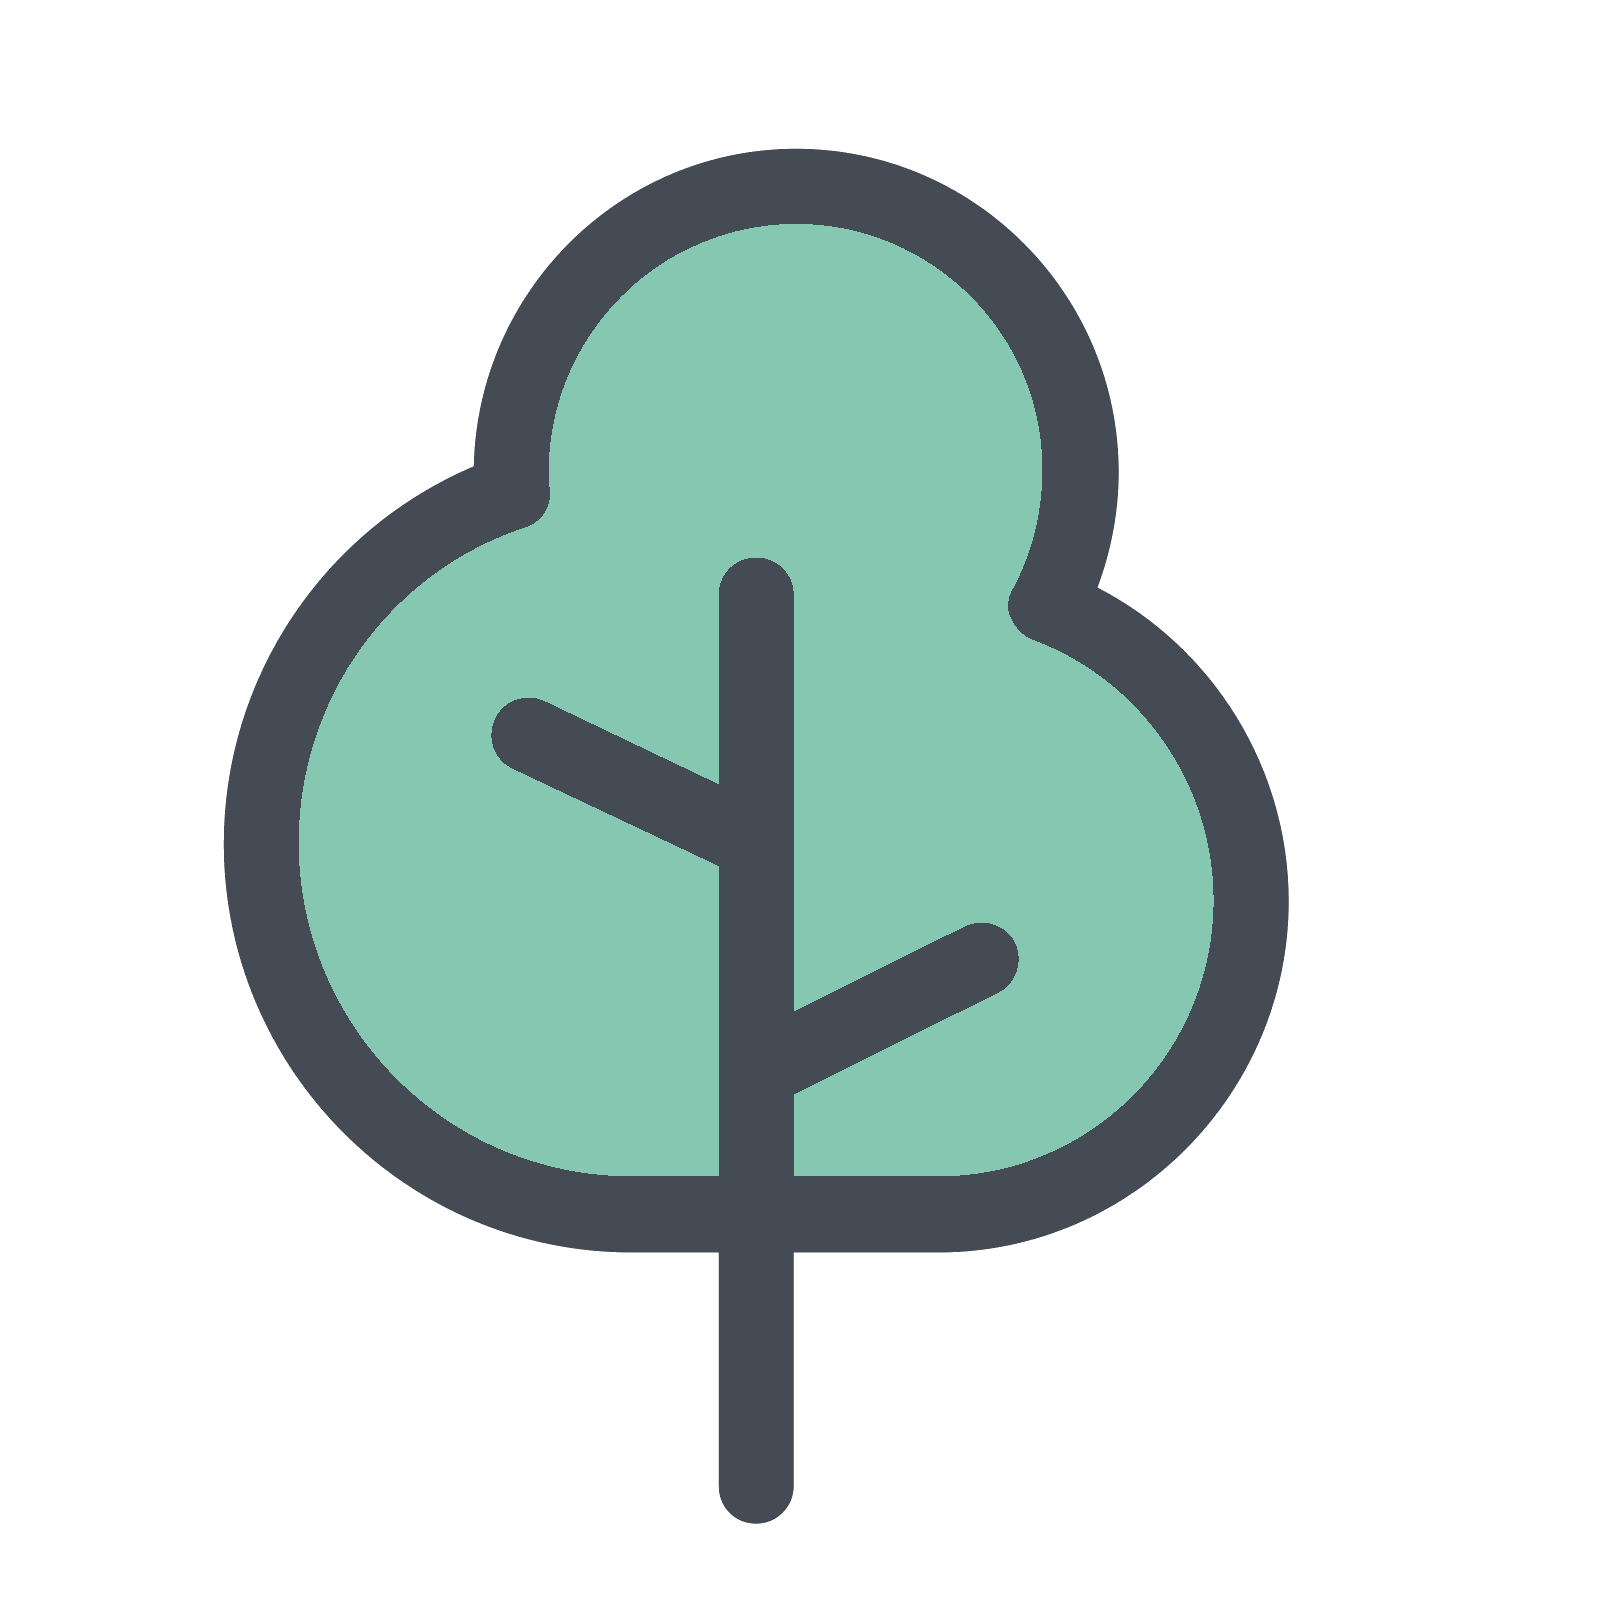 Free download and vector. Tree icon png